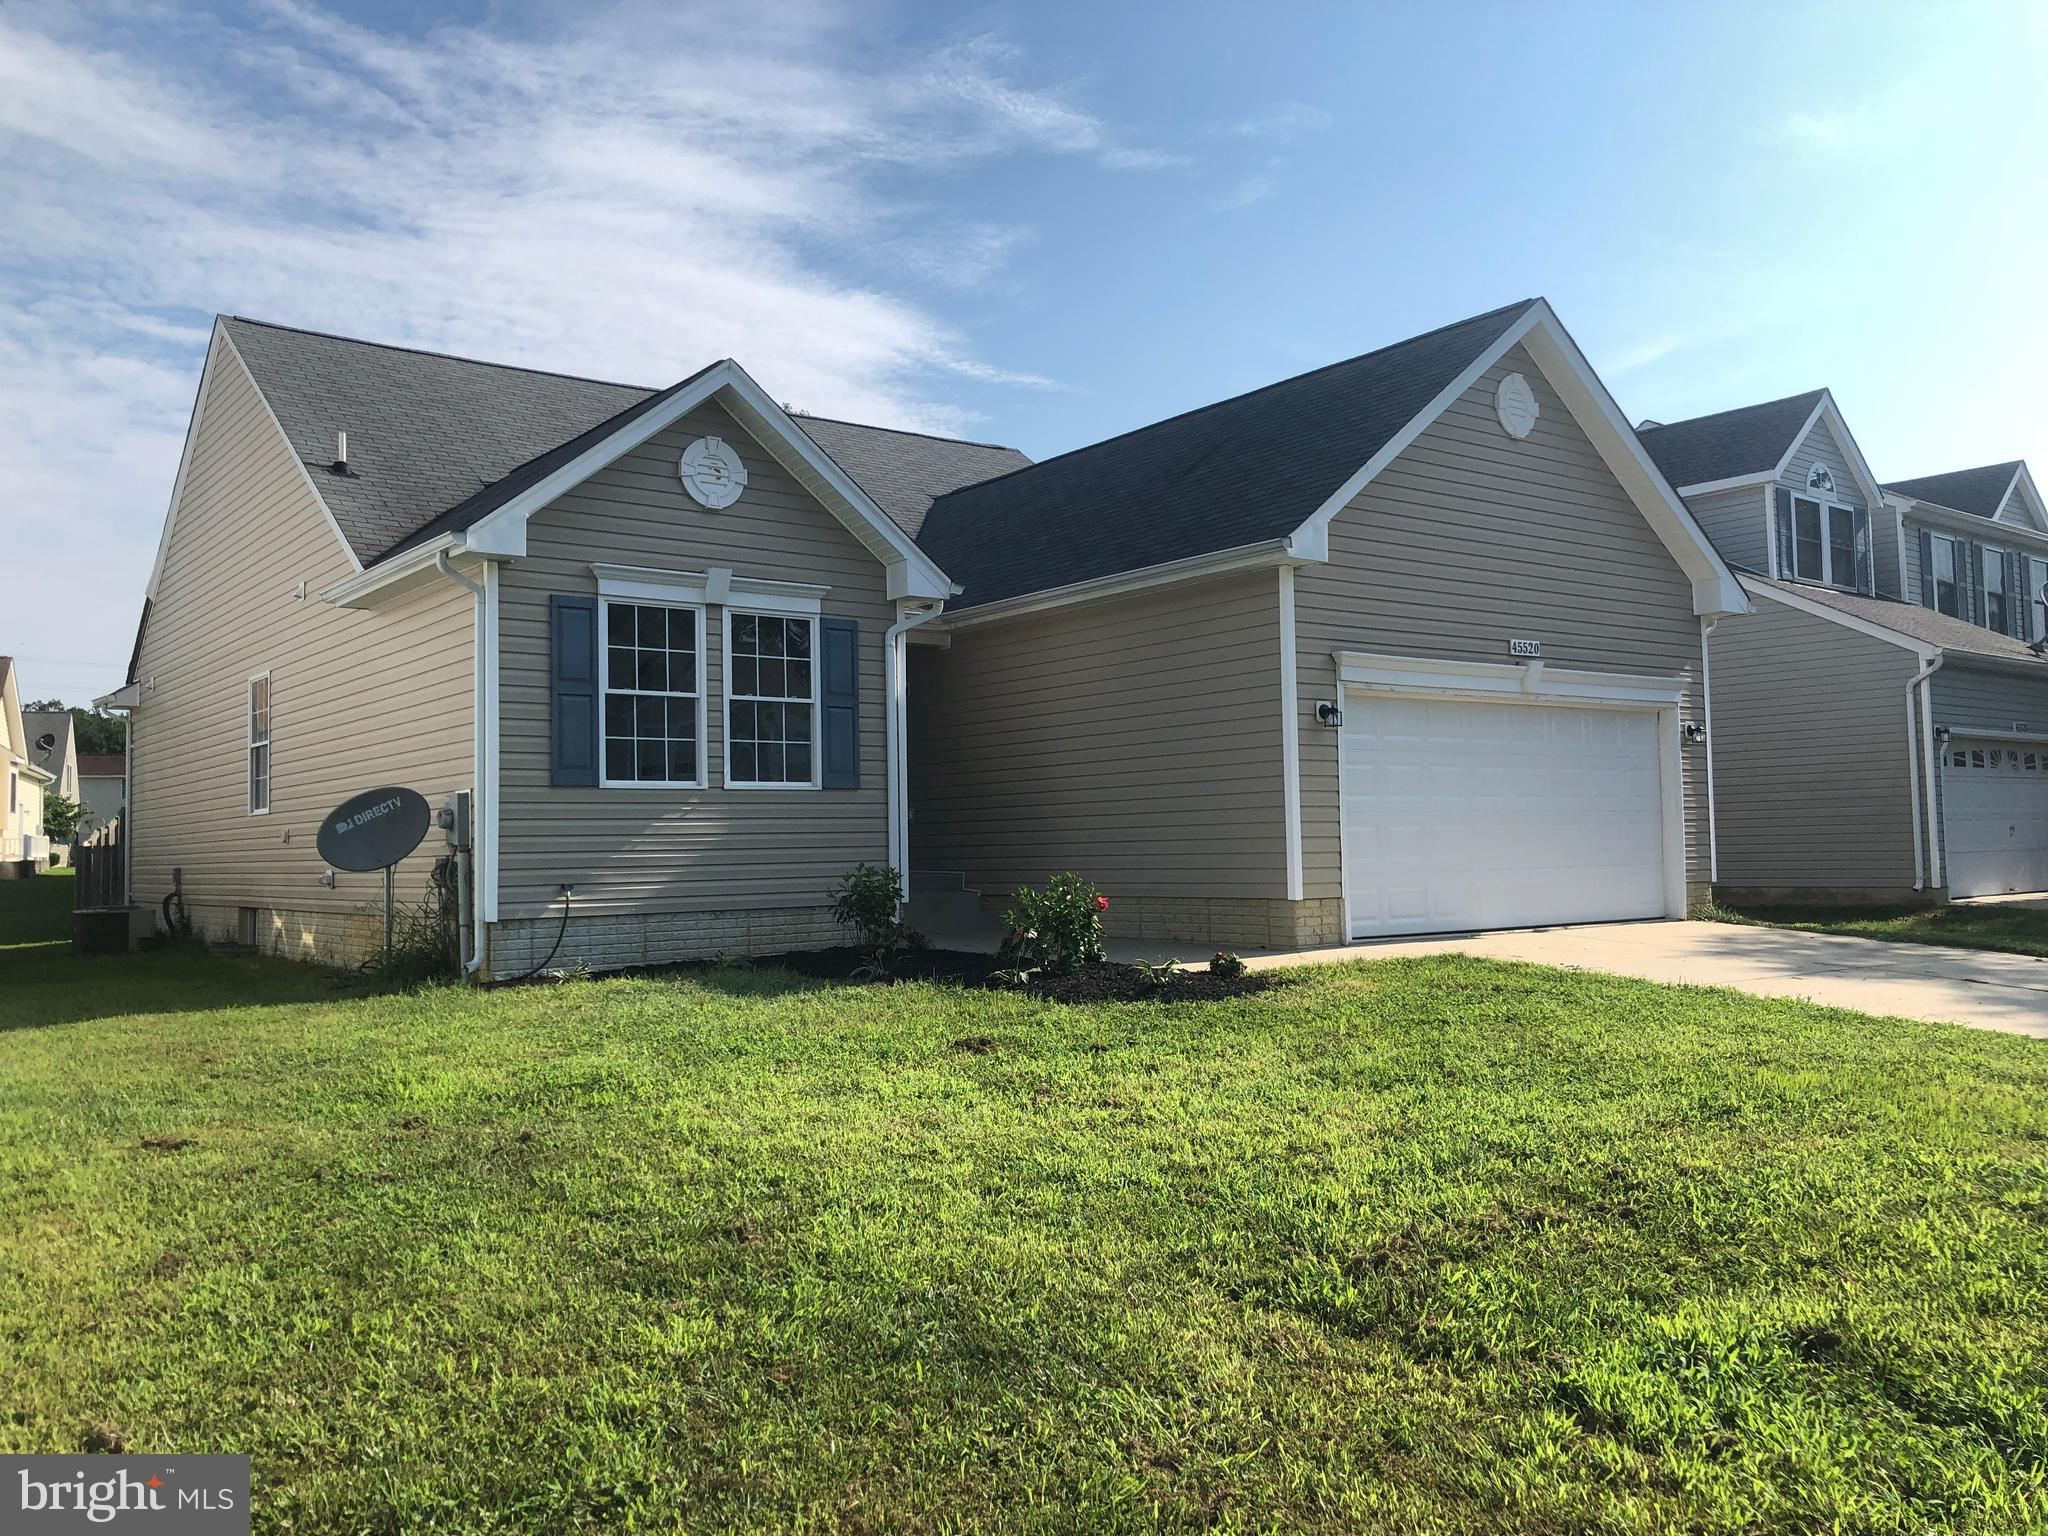 This Beautiful Rambler offers 3 bedrooms and 3 full bathrooms. Large kitchen open to living room and